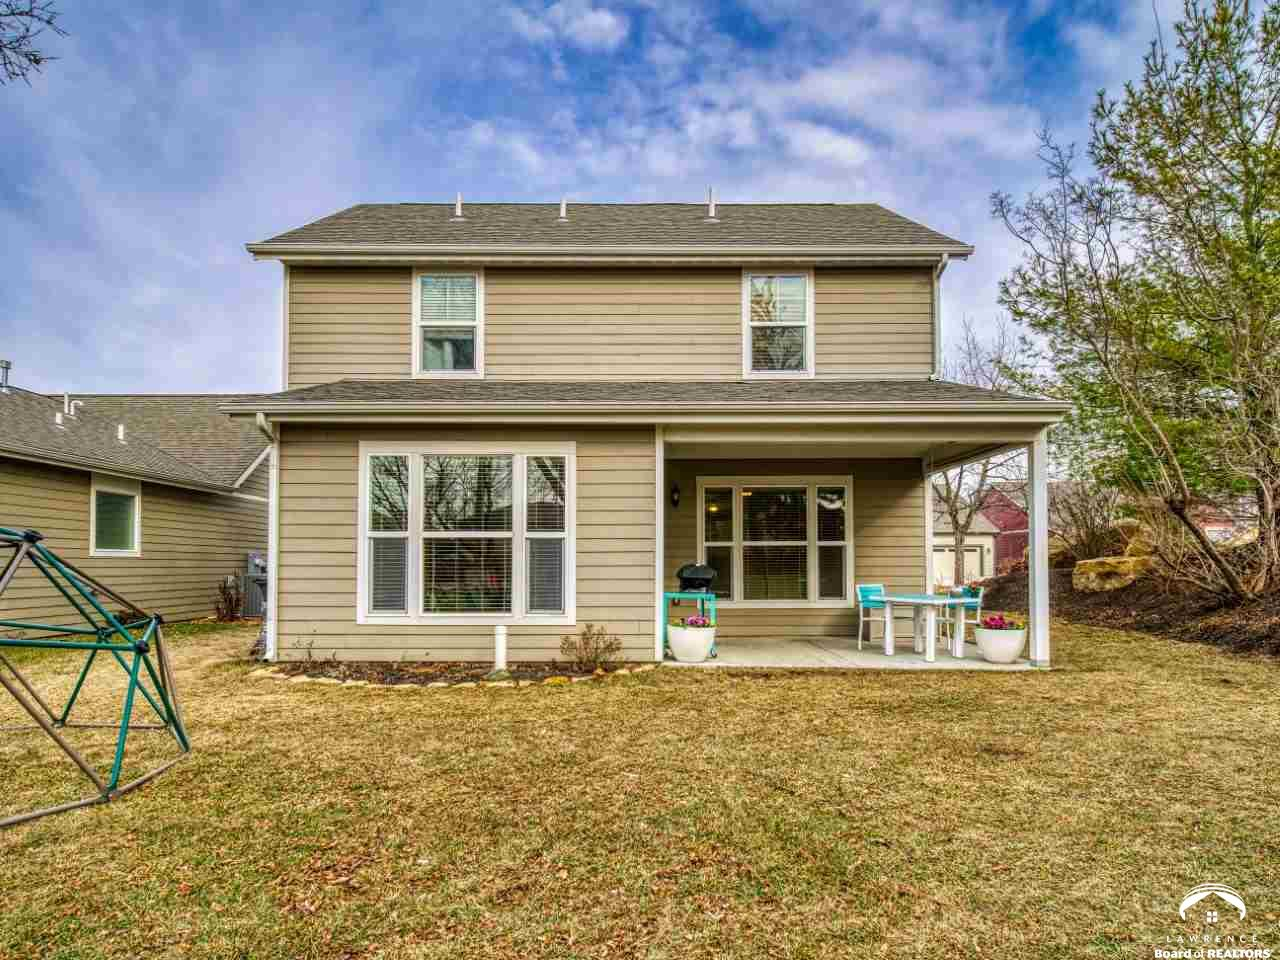 415 Olivia, Lawrence, Kansas 66049, 3 Bedrooms Bedrooms, ,2 BathroomsBathrooms,Residential,For Sale,Olivia,153257